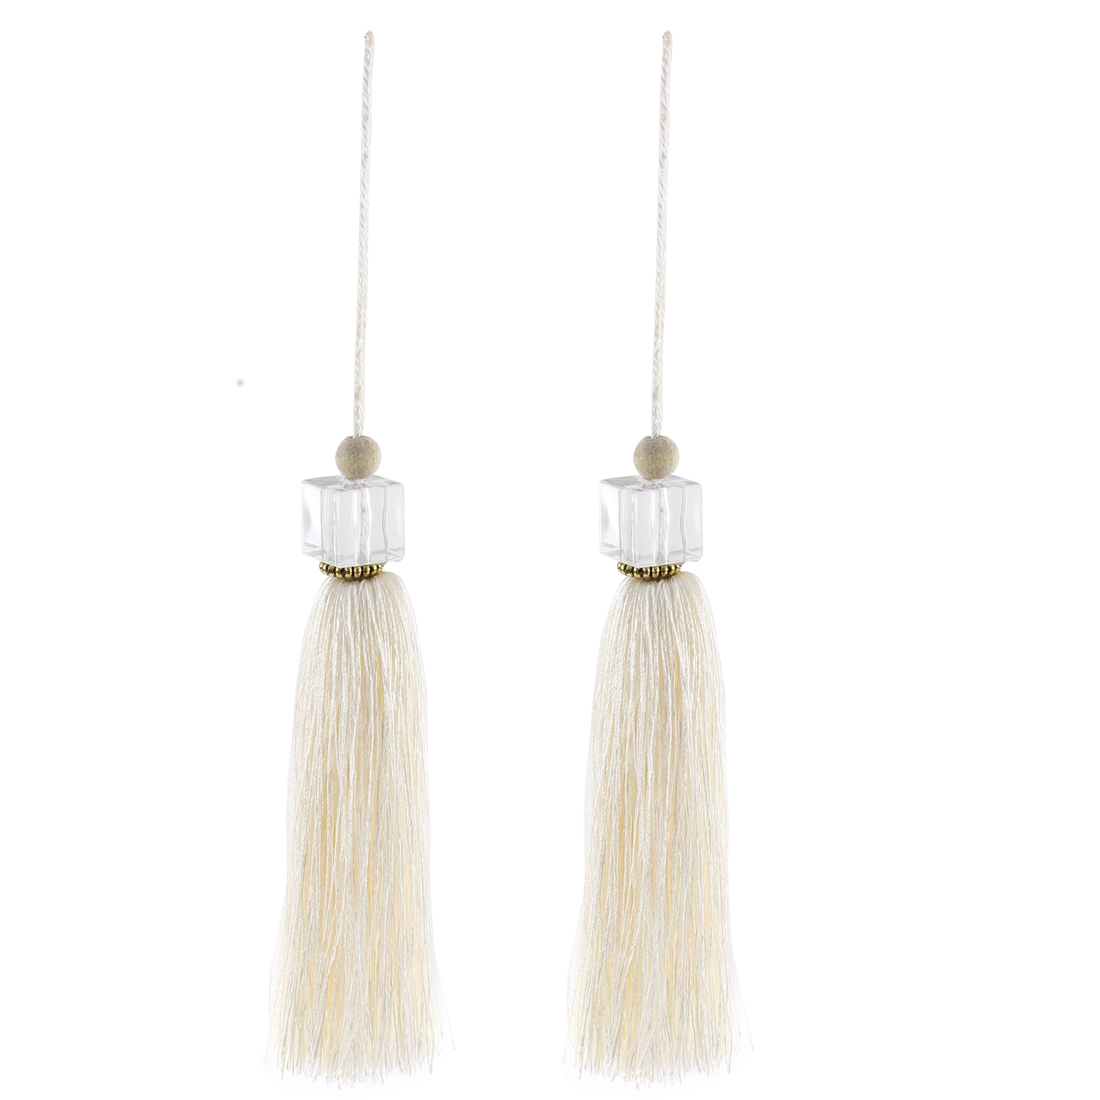 2Pcs Silky Tassels Pendant Sewing DIY Craft Supply Curtain Drapery Deco White